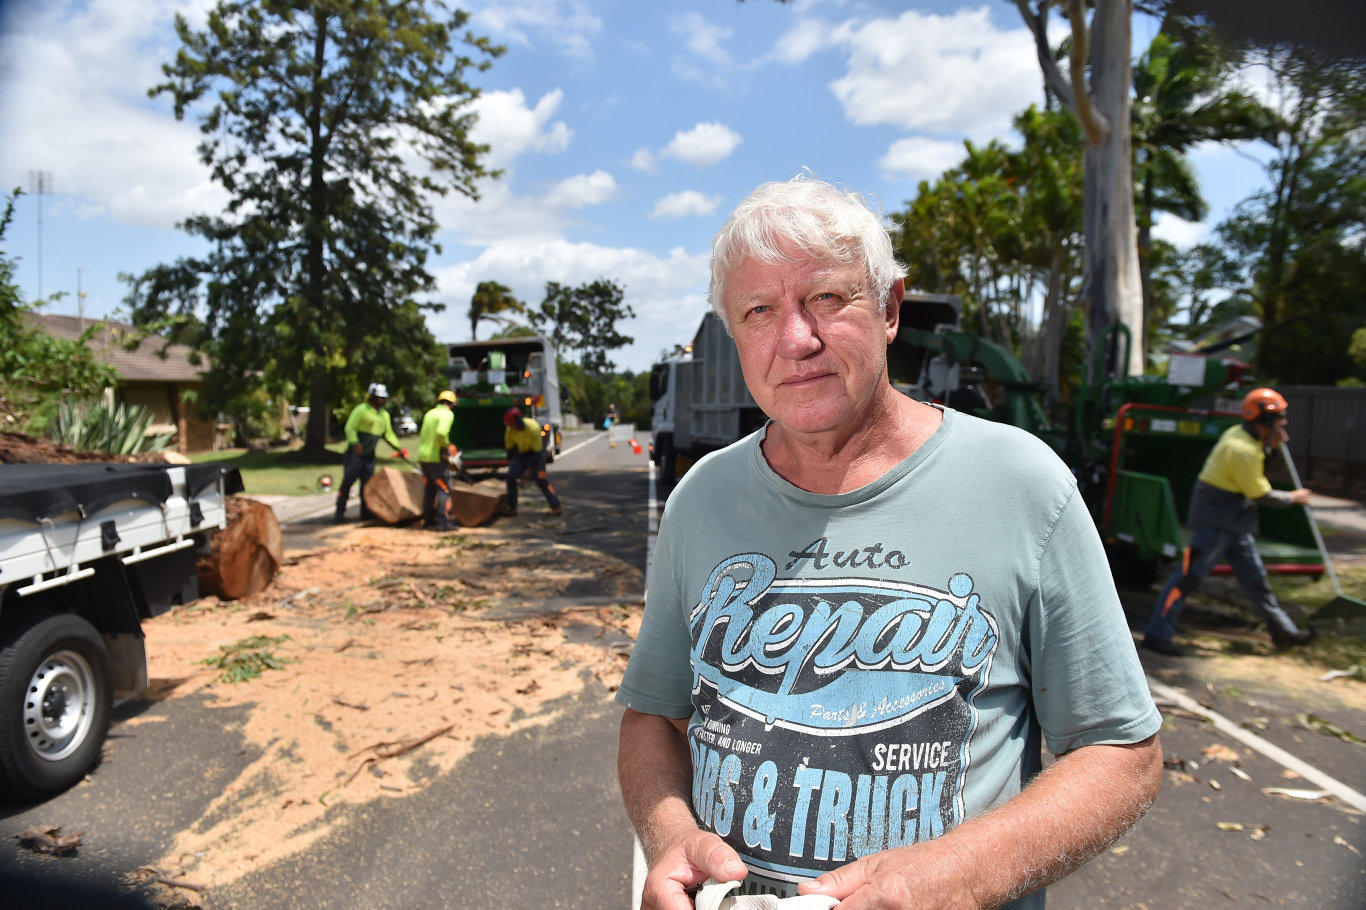 A tree that fell down at Mountain Creek could have killed someone, resident Wes Houk commented on.